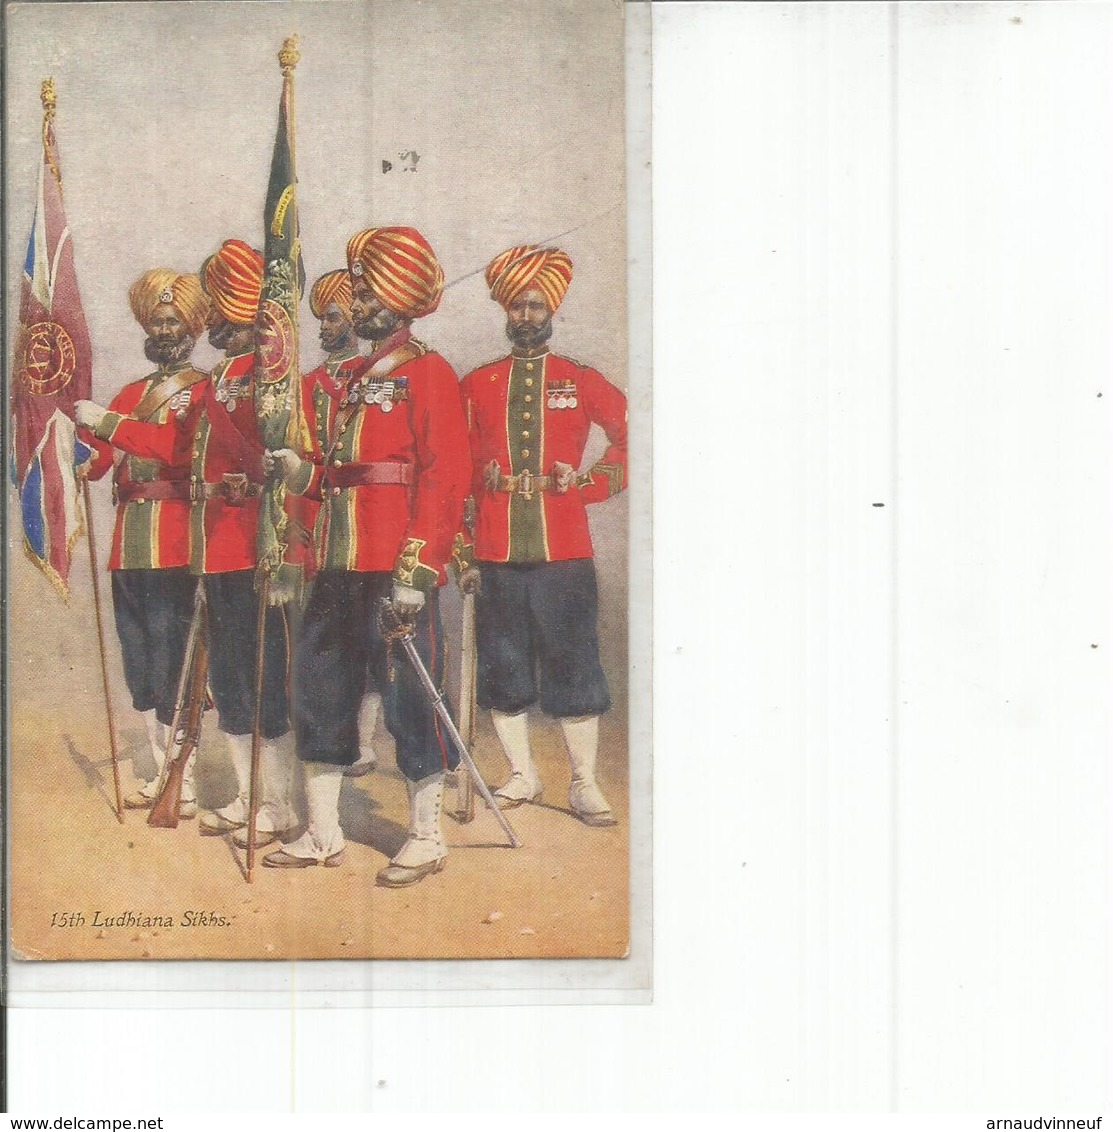 LUDHIANA SIKHS - Personnages